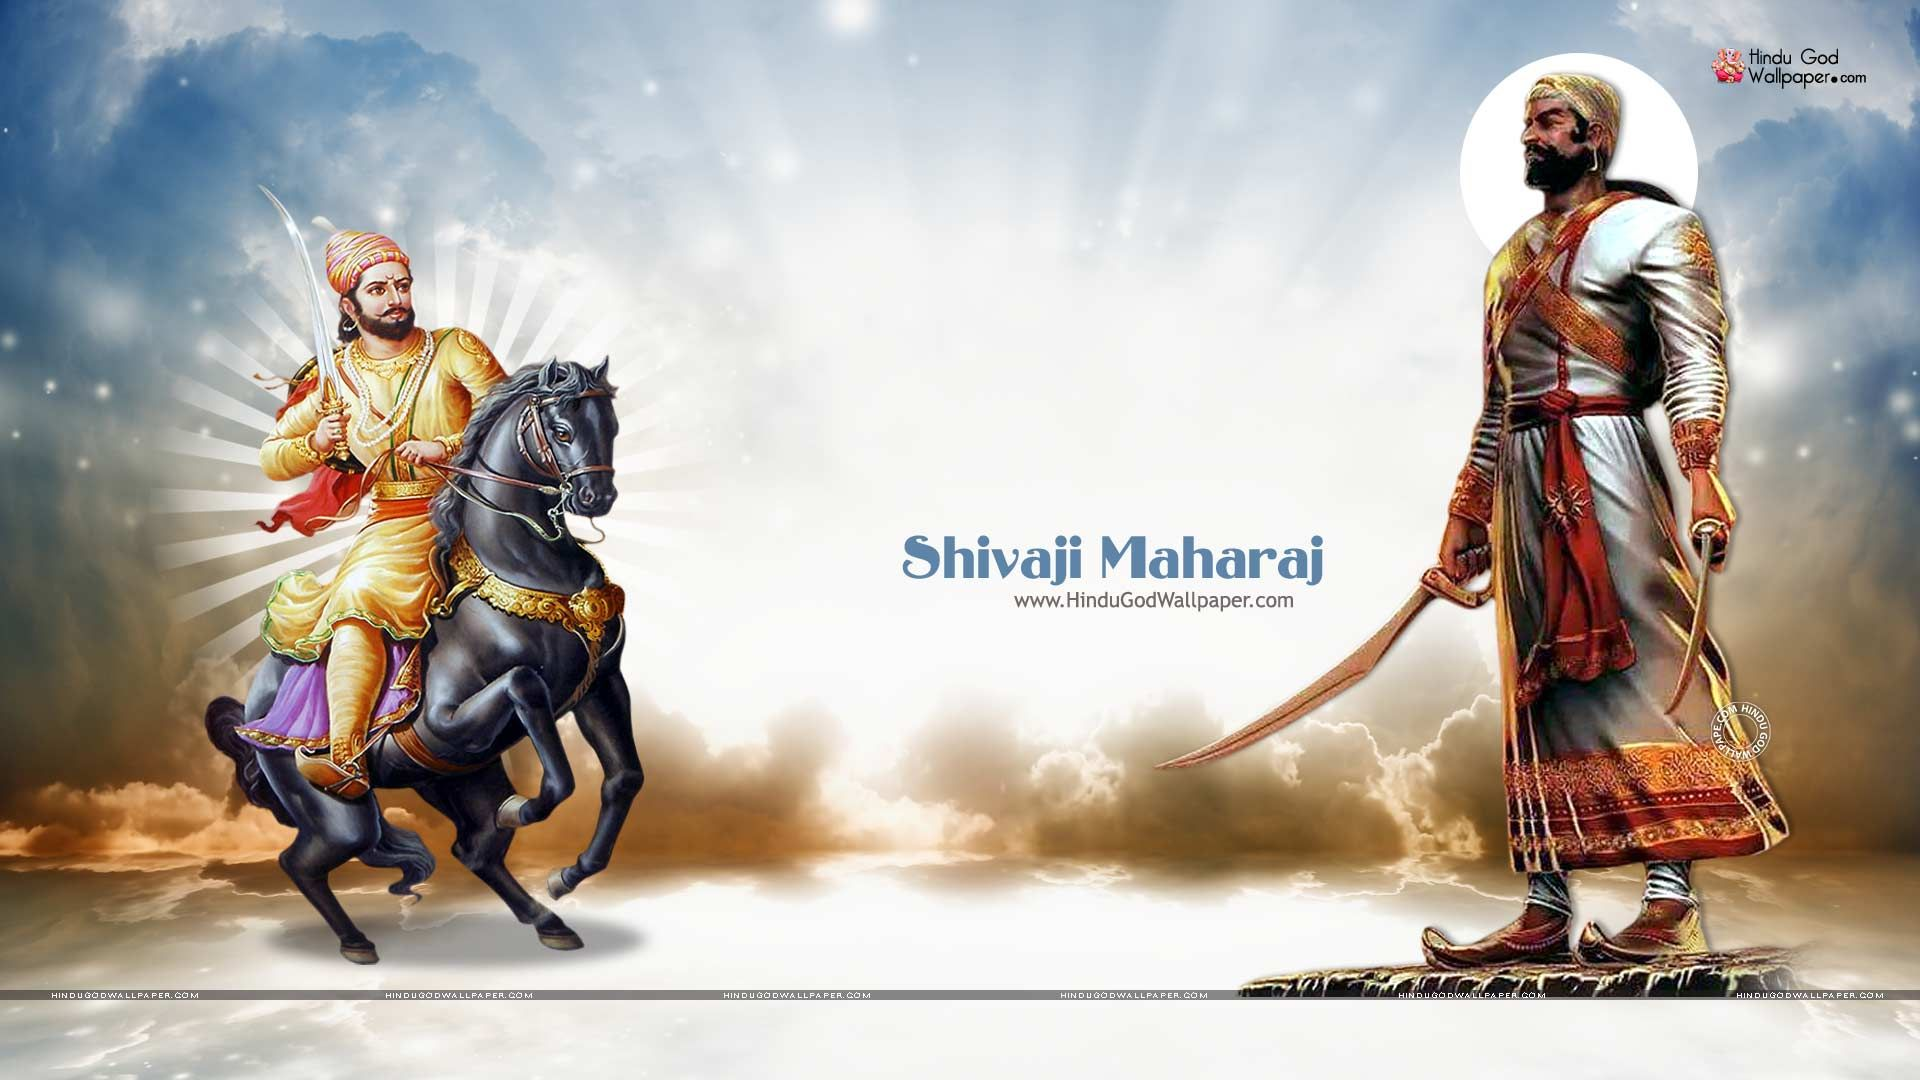 Shivaji Maharaj Wallpaper Hd Full Size Shivaji Maharaj Hd Wallpaper Full Hd Wallpaper Download Shivaji Maharaj Wallpapers